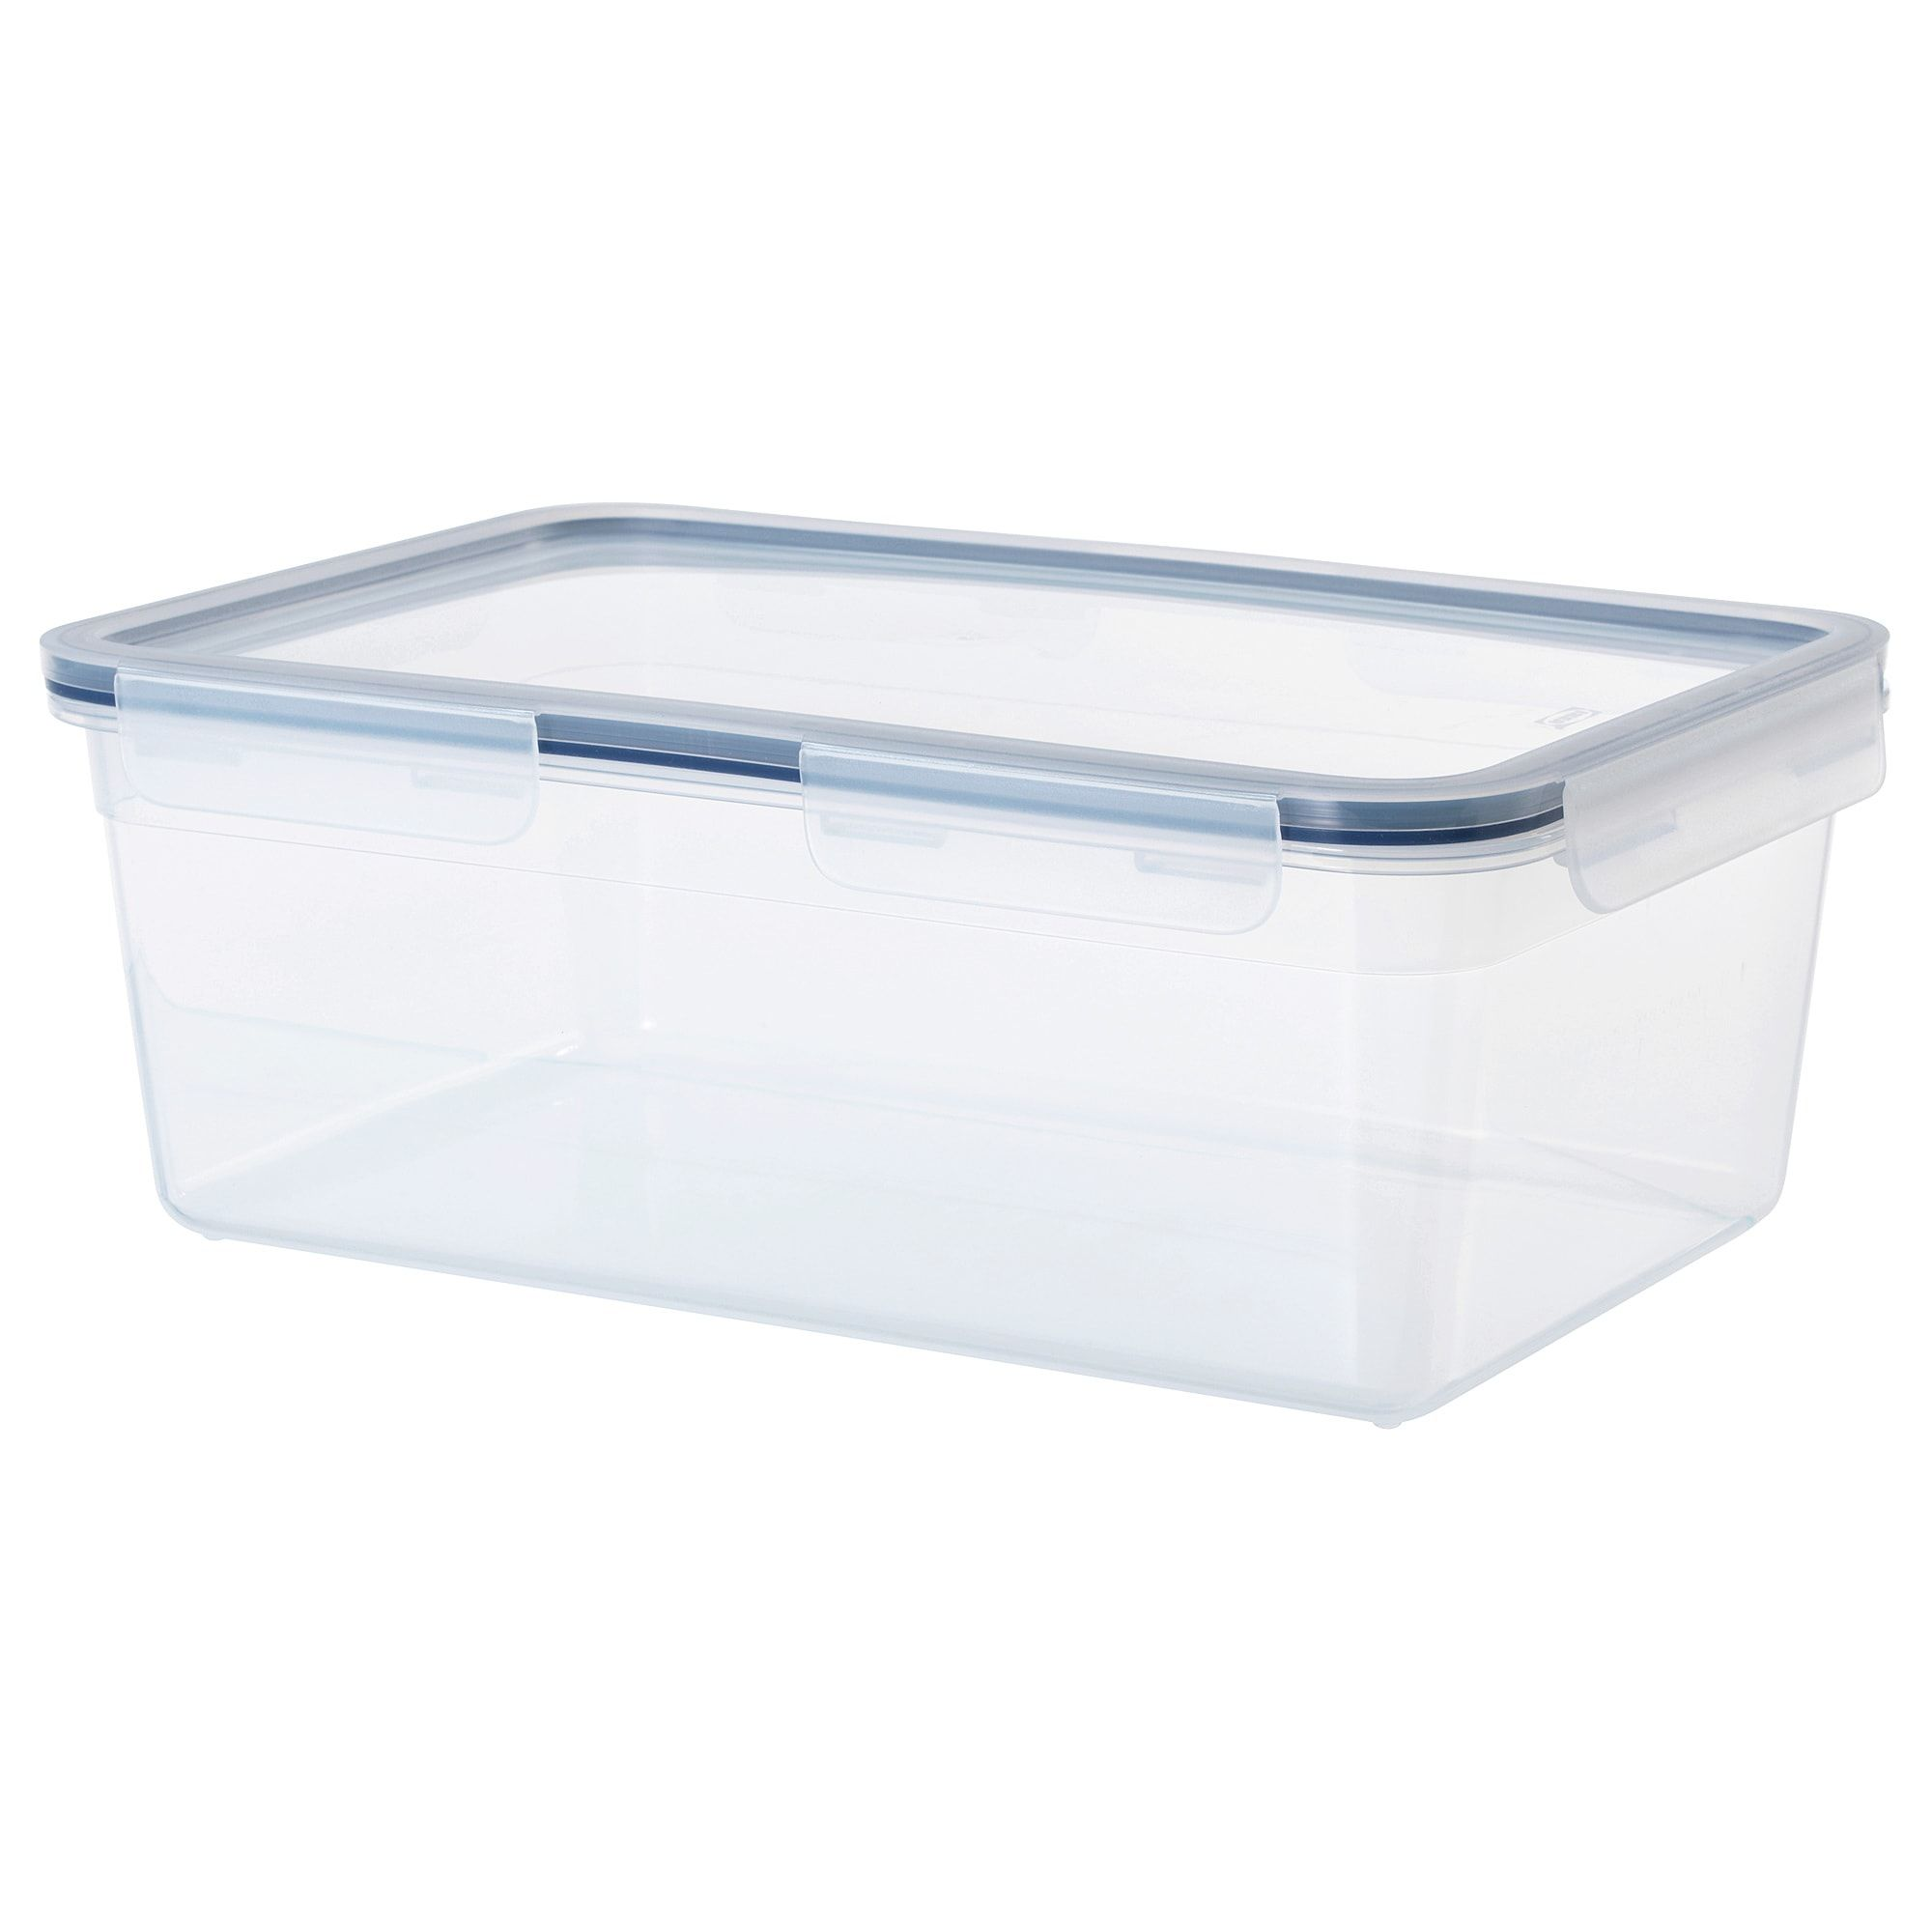 Ikea 365 Food Container With Lid Rectangular Plastic Shop Ikea Ikea Plastic Kitchen Storage Containers Ikea 365 Ikea